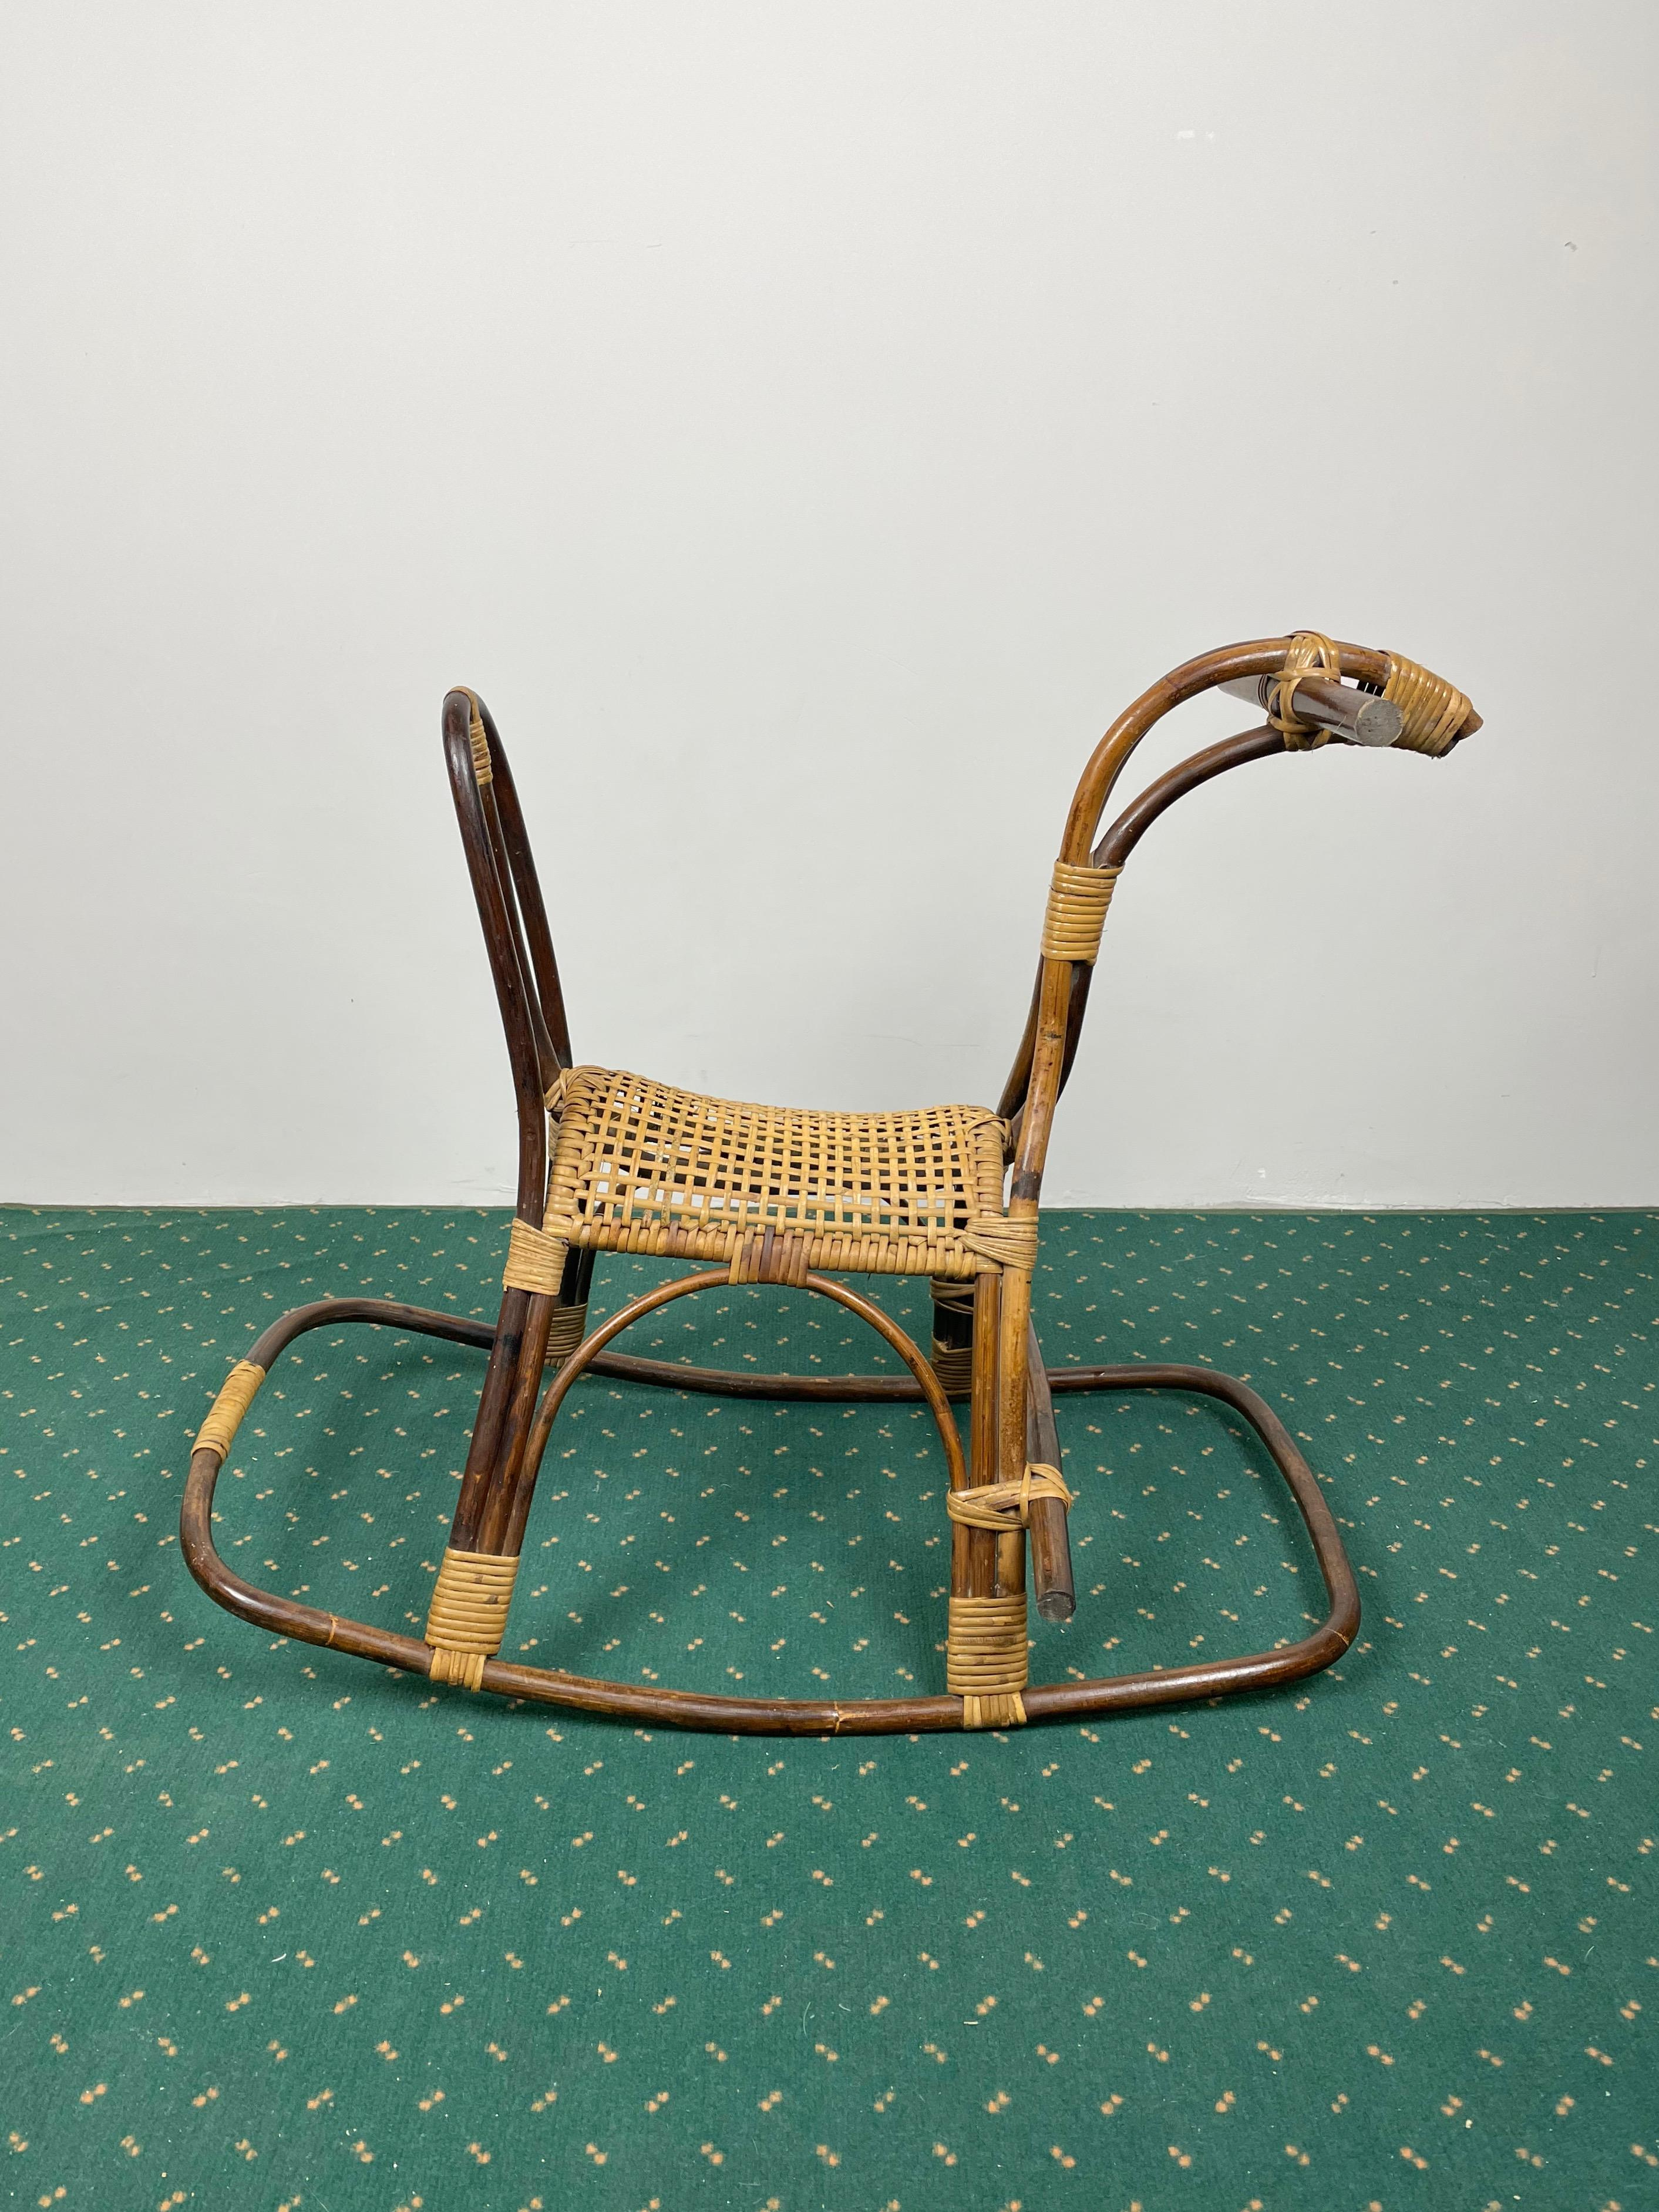 Rattan Bamboo And Wicker Rocking Horse Child S Toy Italy 1960 For Sale At 1stdibs